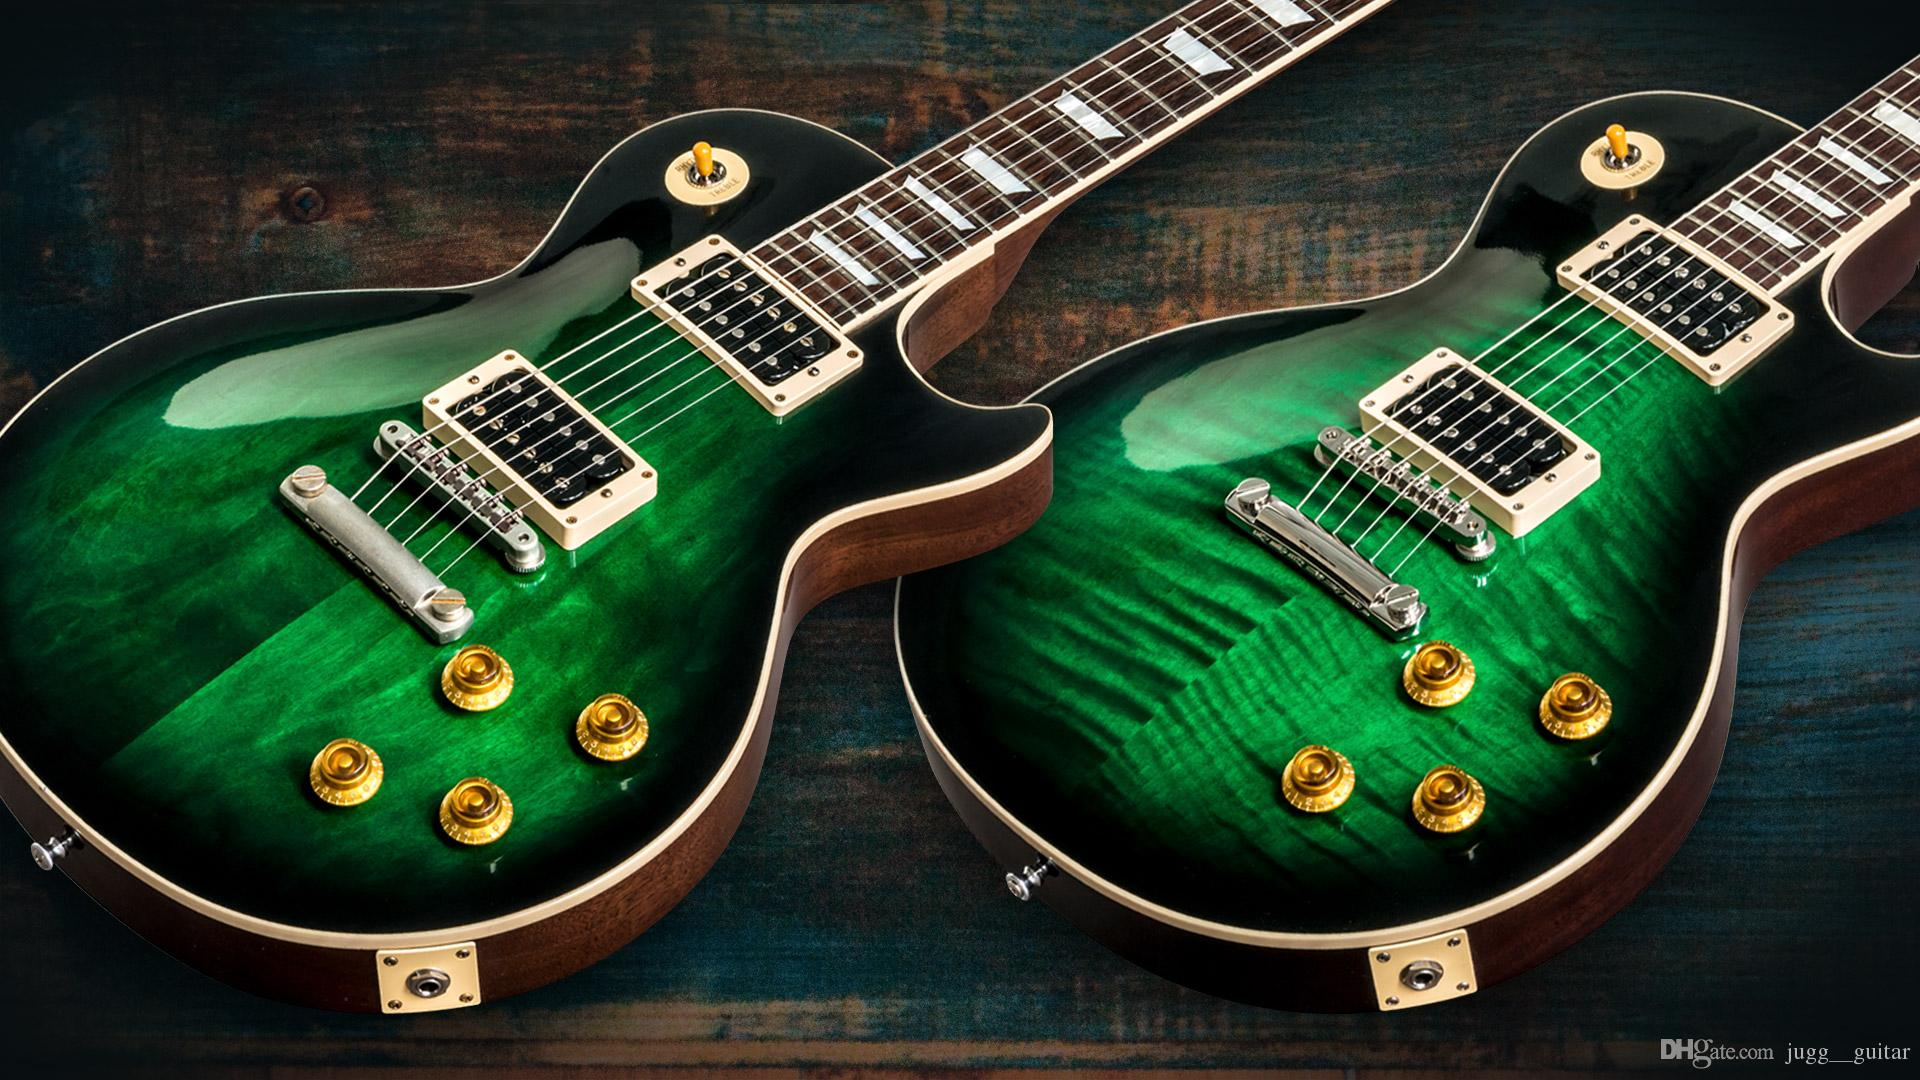 Ultimate Custom 1958 Slash Signed 2017 Edizione limitata Anaconda Burst Flame Top / Anaconda Plain Top Green Chitarra elettrica Dark Brown Indietro